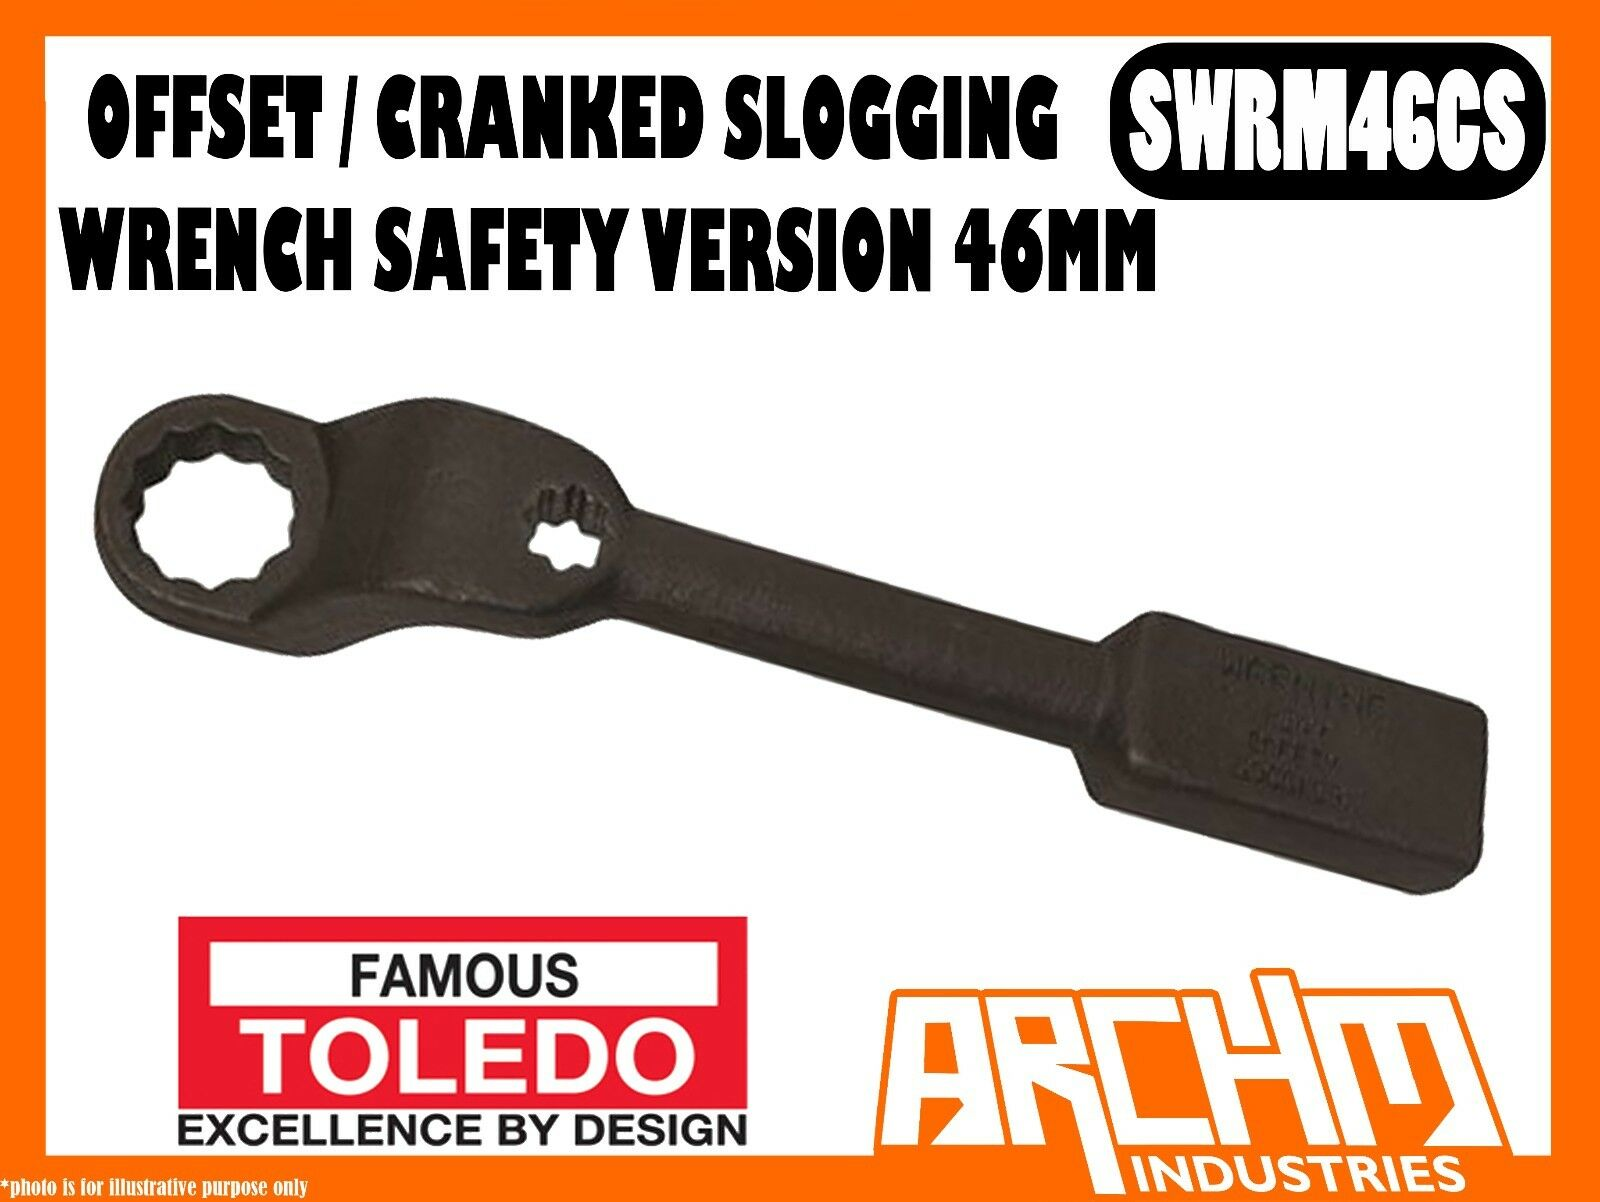 TOLEDO SWRM46CS - OFFSET   CRANKED SLOGGING WRENCH SAFETY VERSION - 46MM METRIC